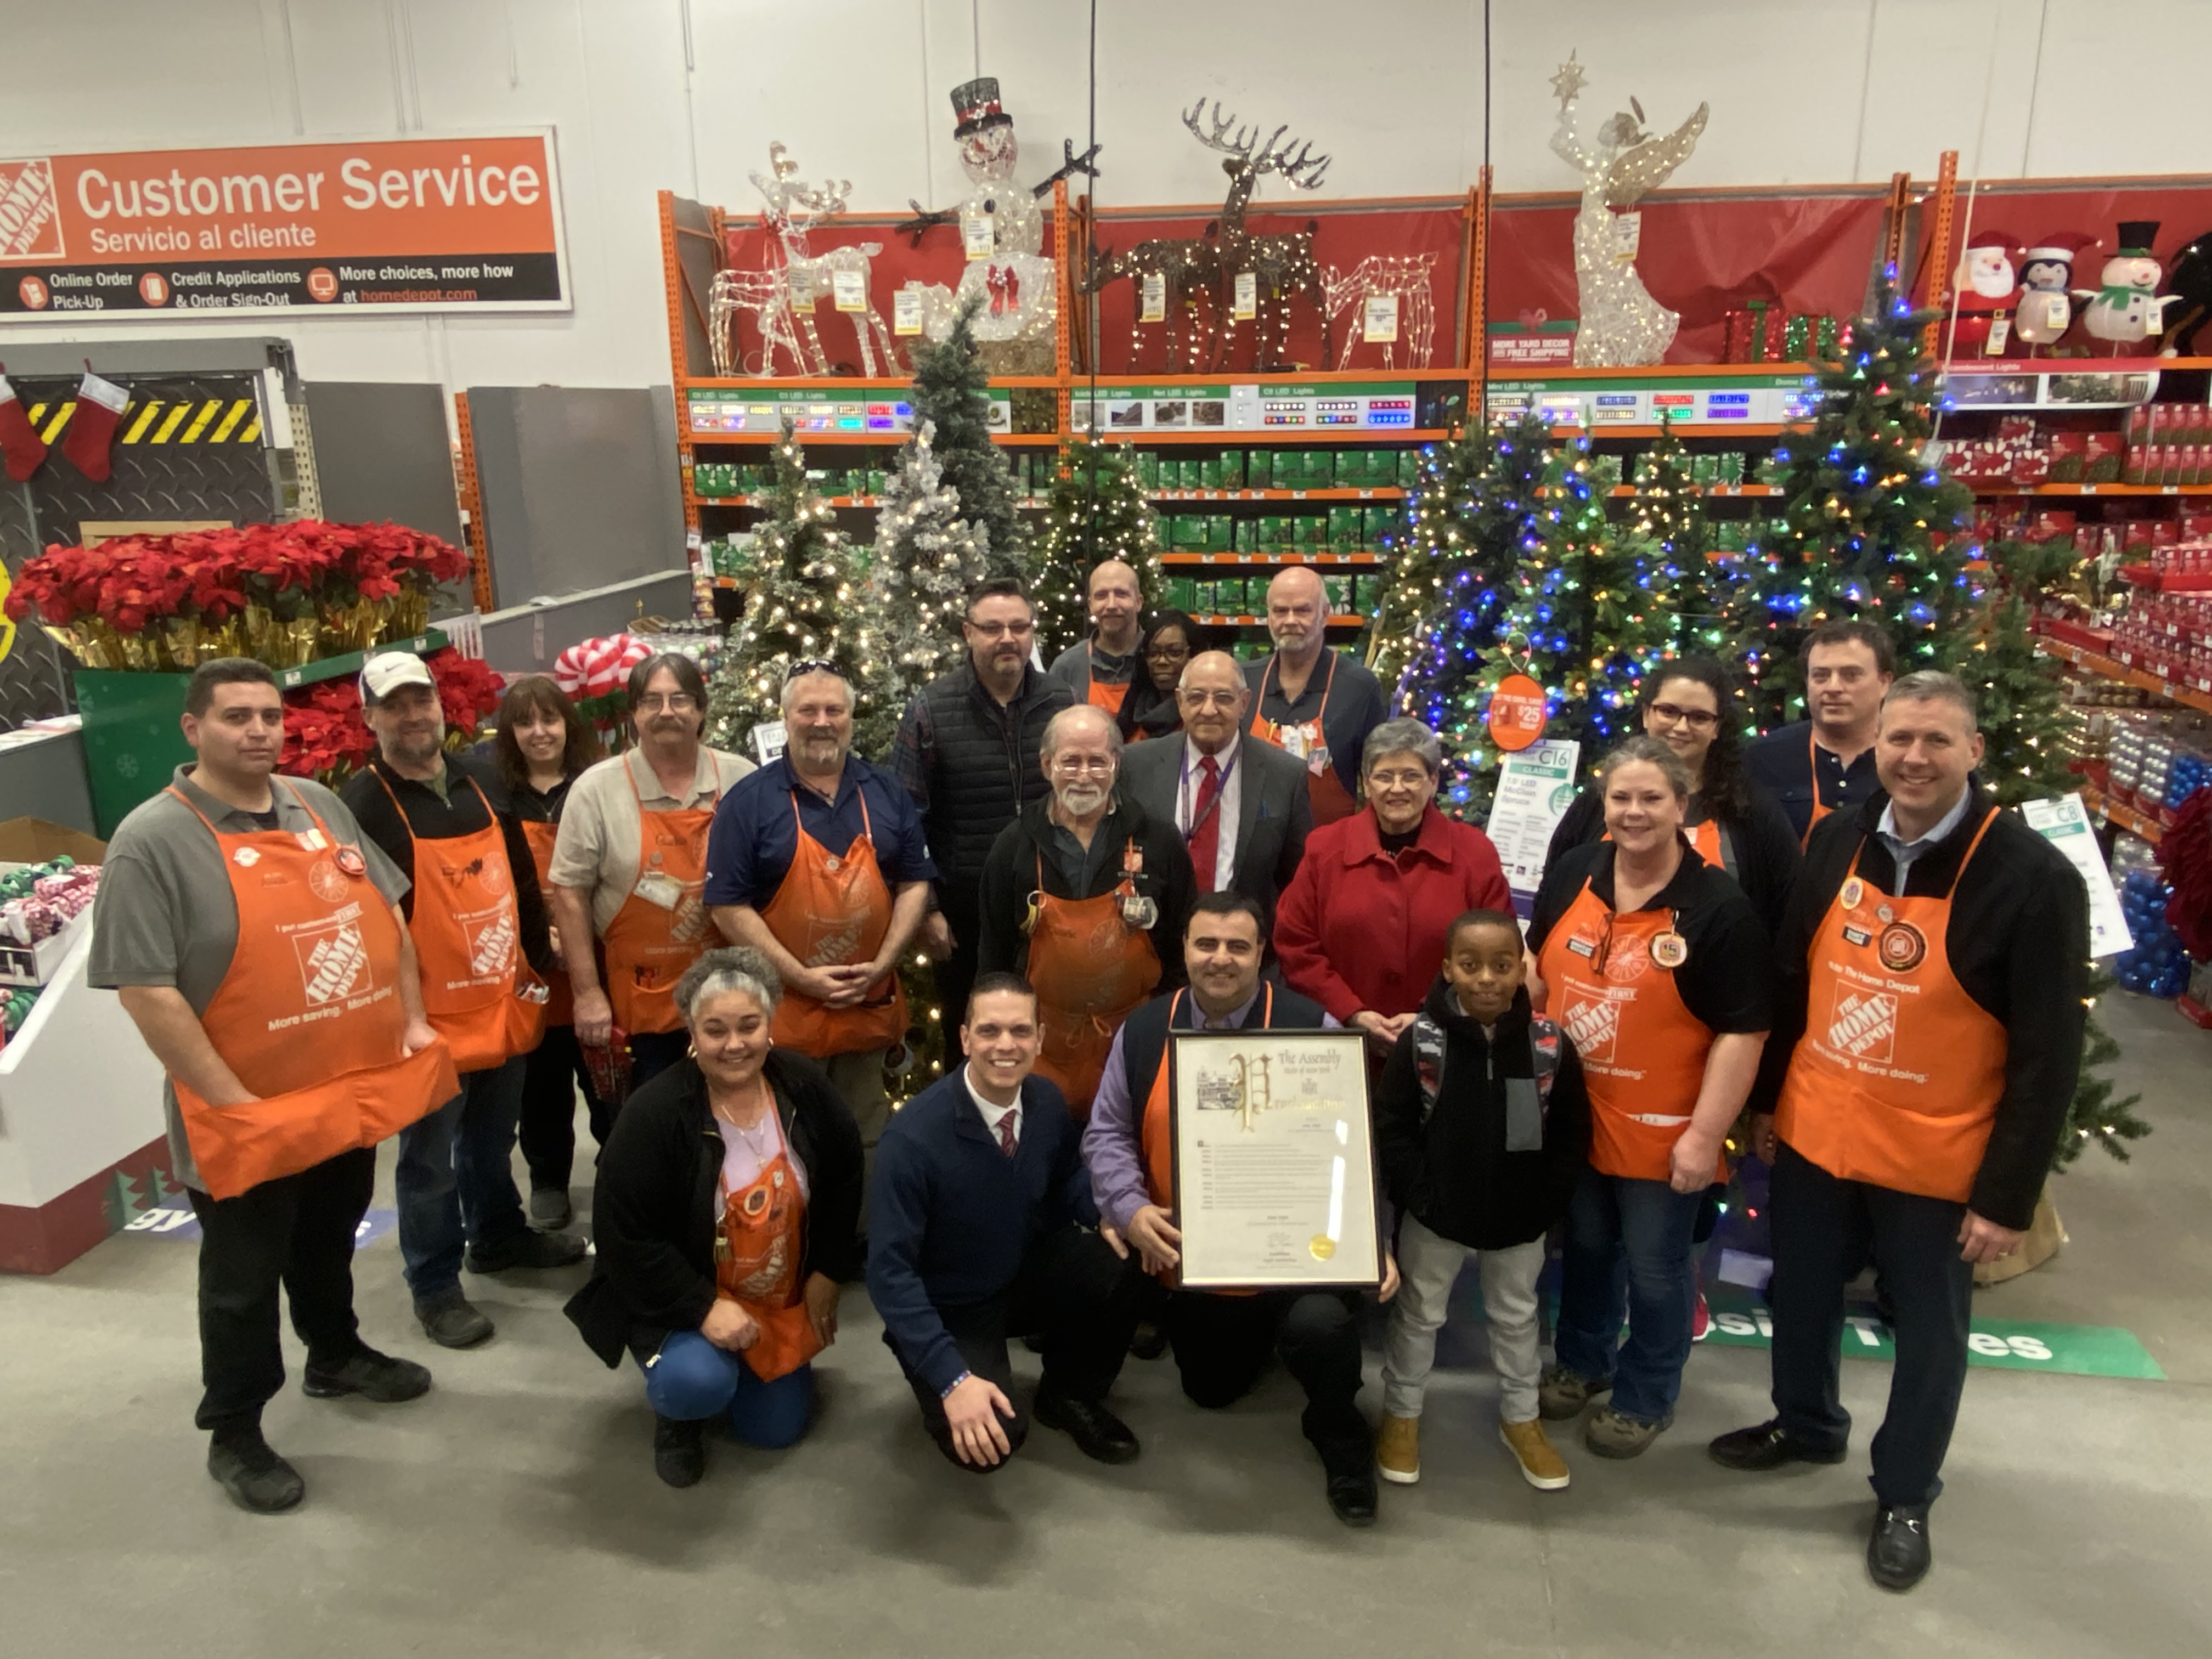 The management team and staff of Home Depot, join Assemblyman Santabarbara and Interim Superintendent of the Greater Amsterdam School District Dr. Ray Colucciello, School Board President Dr. Nellie Bu